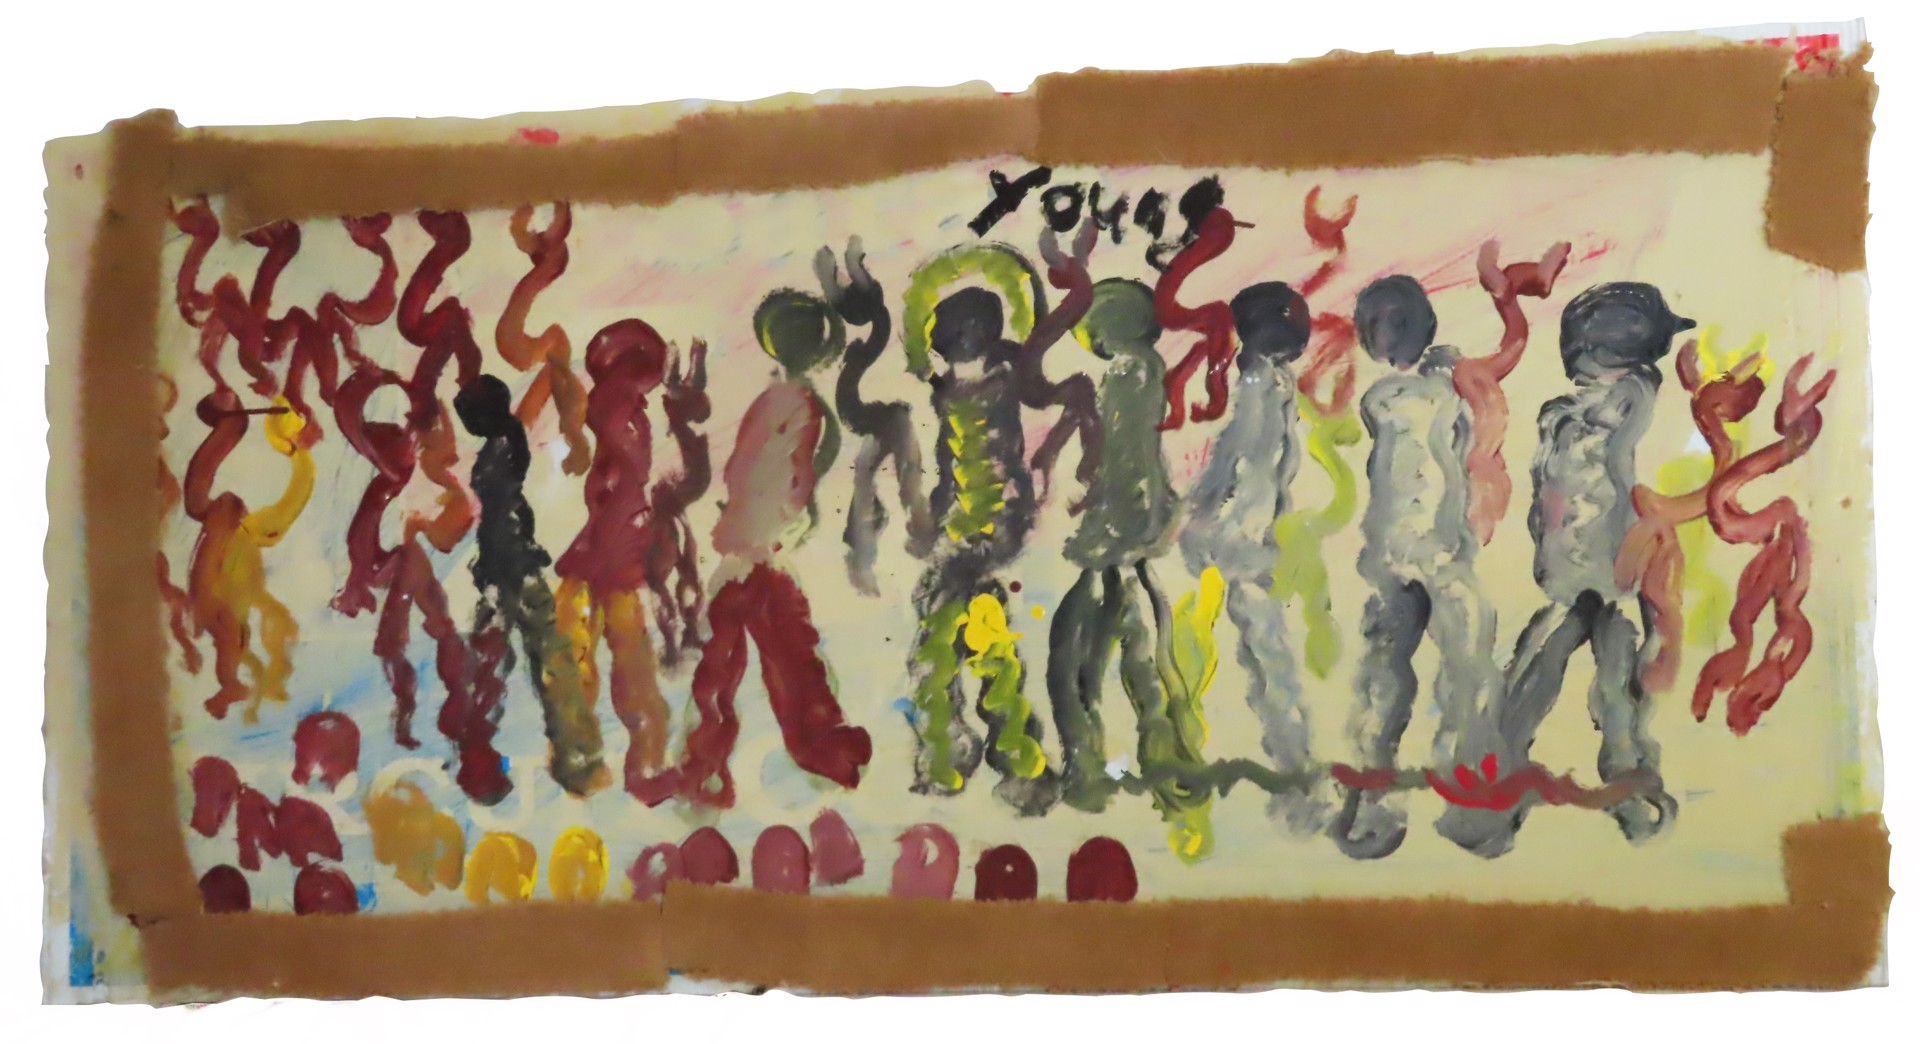 Protesting the Past by Purvis Young (1943 - 2010)